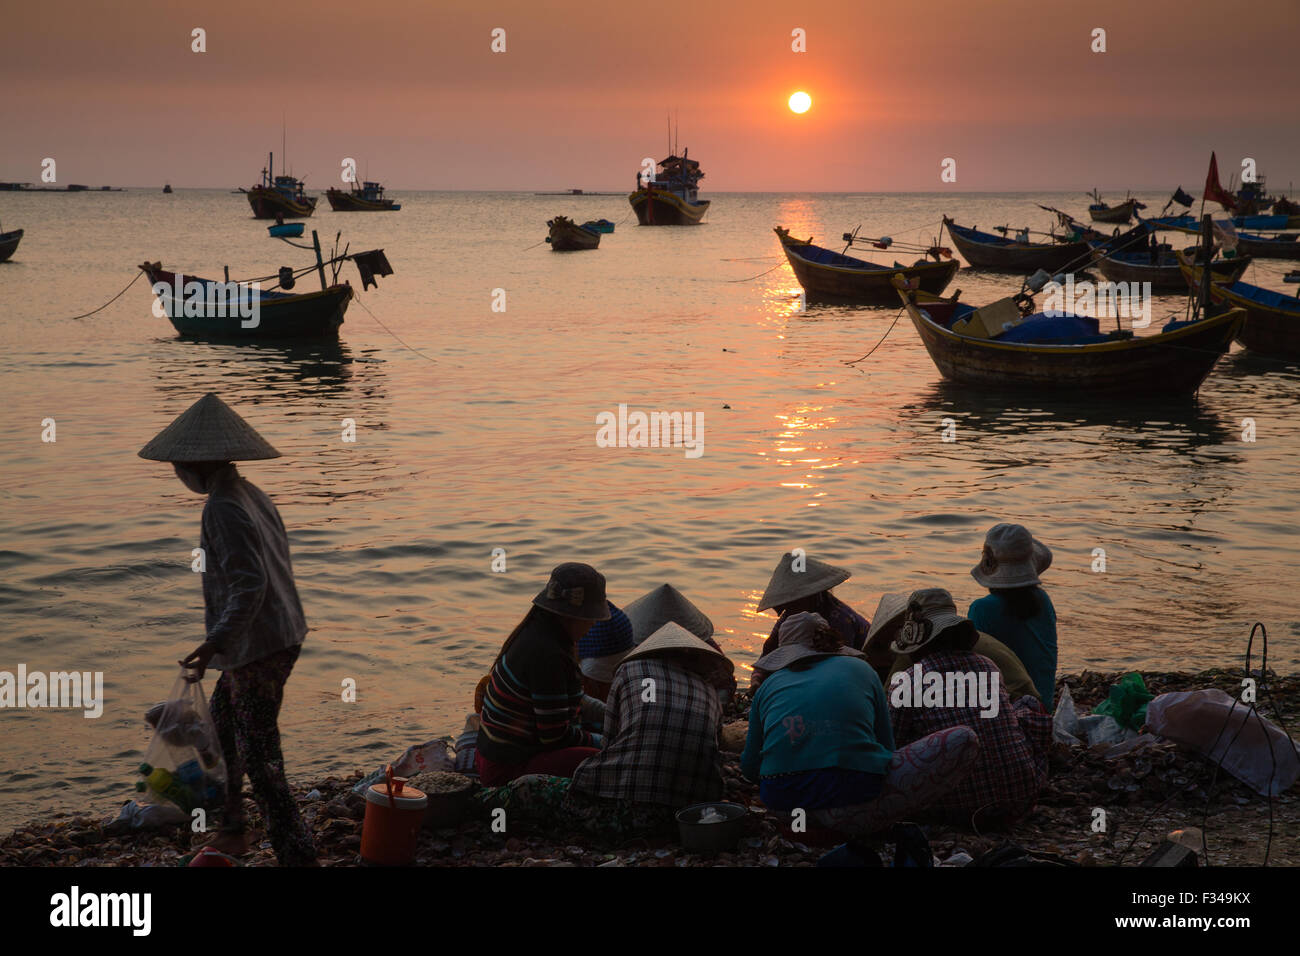 on the beach at Mũi Né fishing village at dusk, Bình Thuận Province, Vietnam Stock Photo